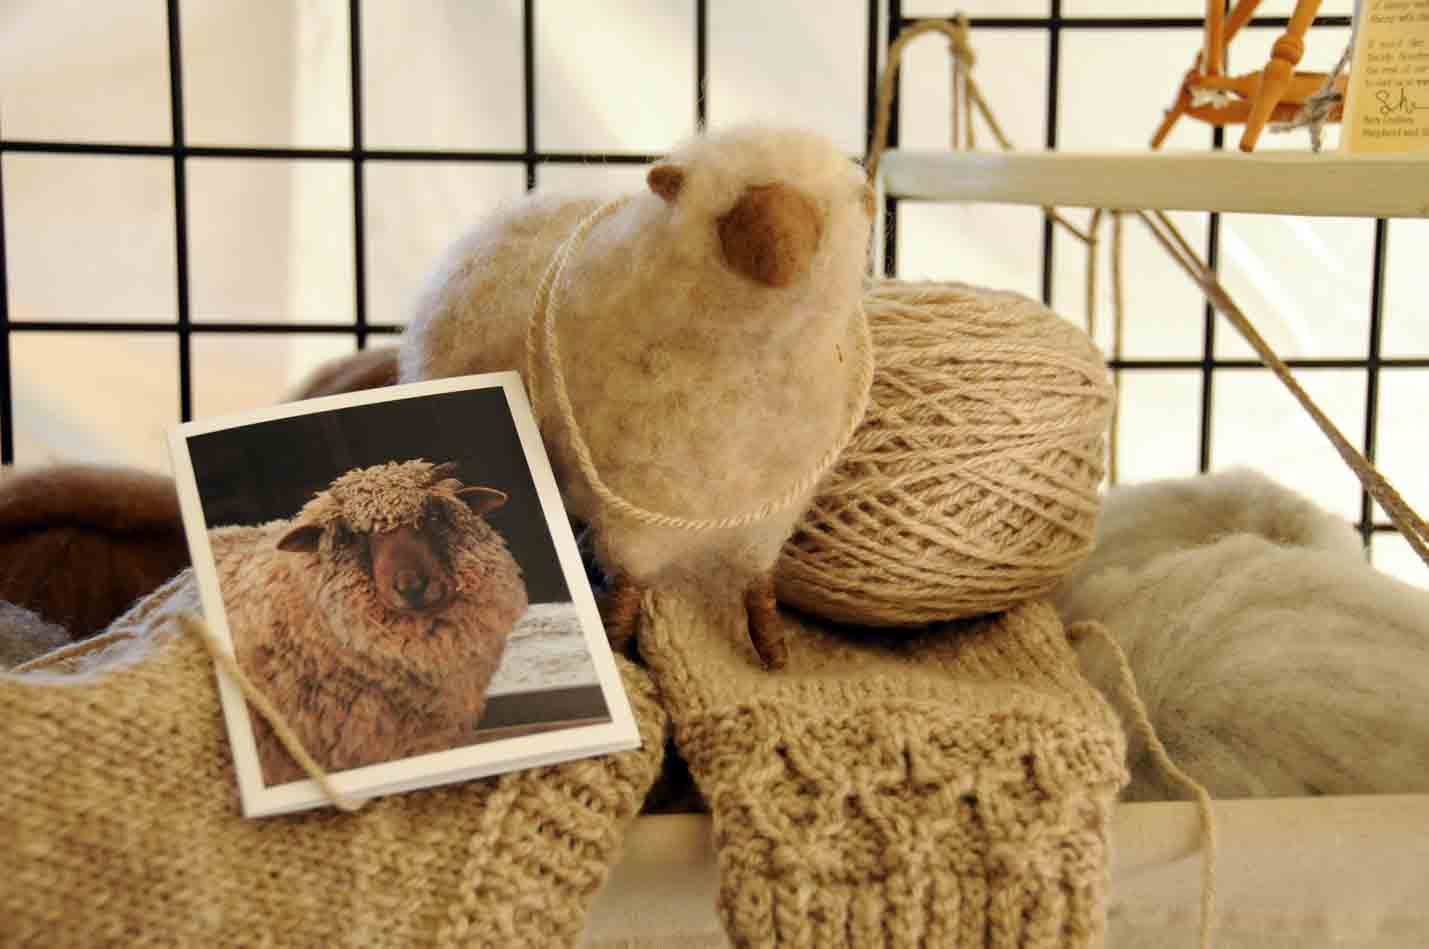 For A Fun Photo Op We Pulled Out One Of The Petunia Cards And Felted Sheep